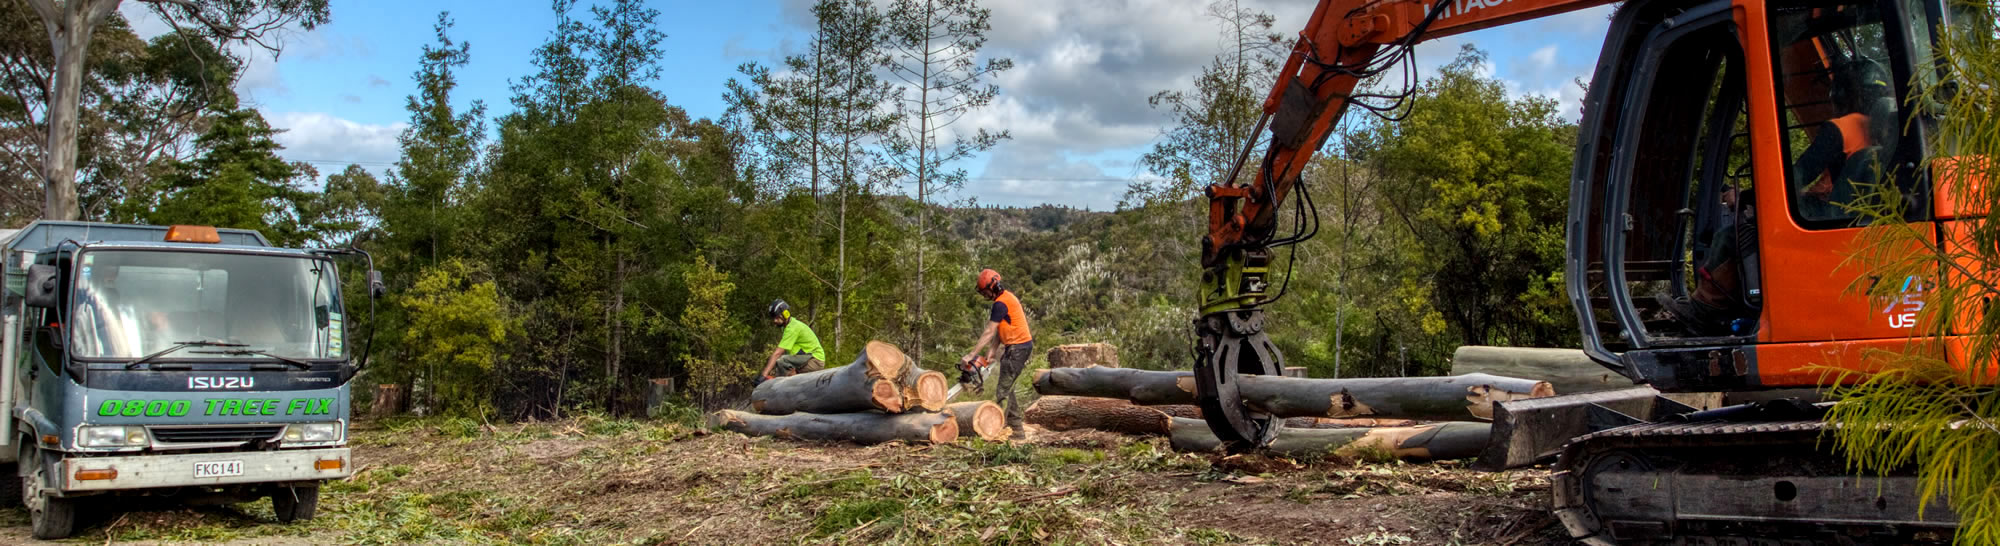 professional tree services whangarei